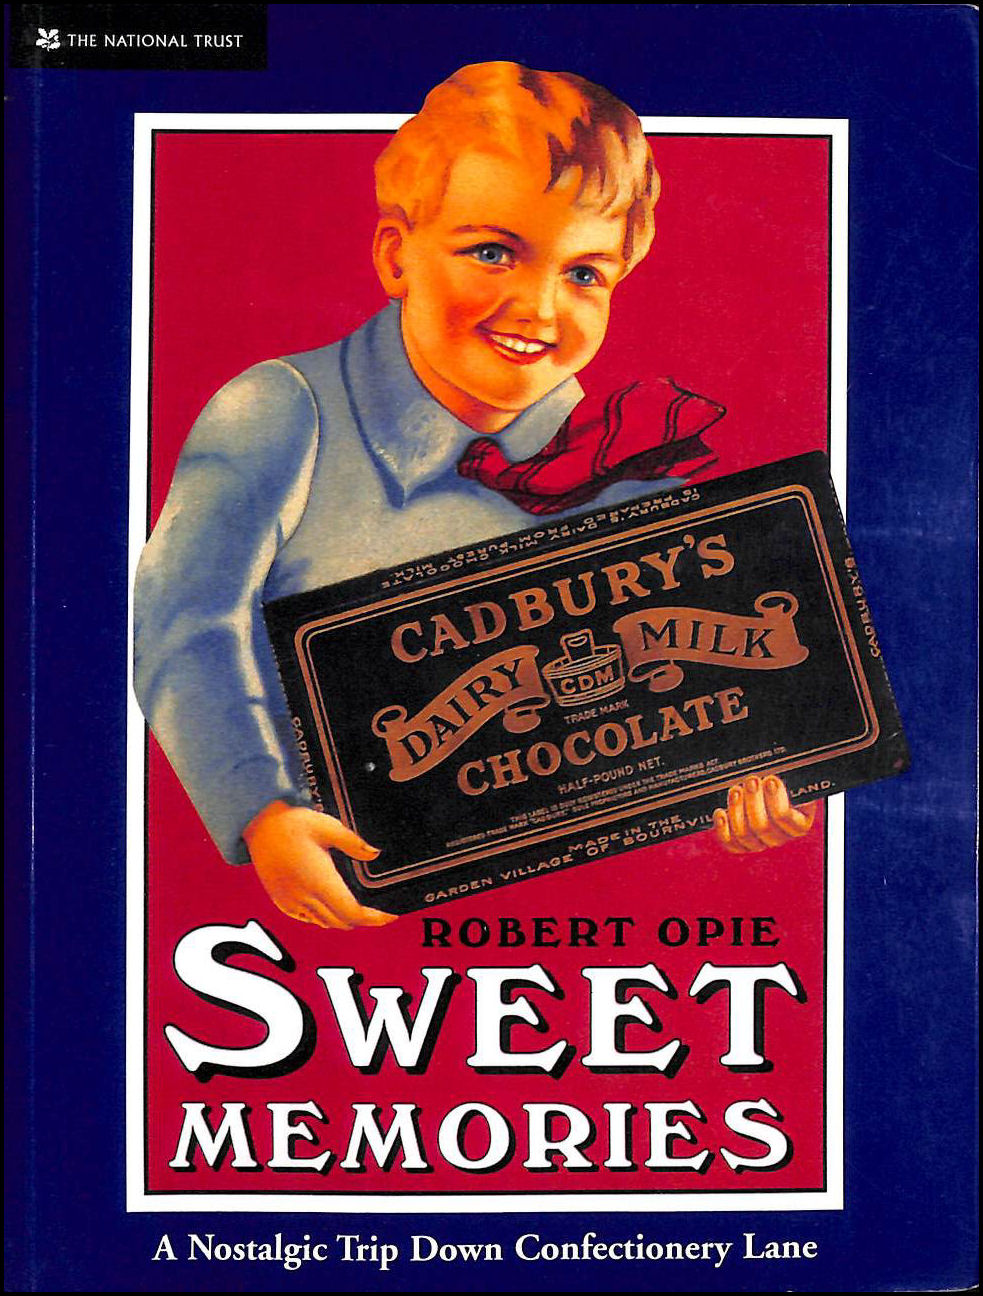 Sweet Memories : A Nostalgic Trip Down Confectionary Lane, Robert Opie